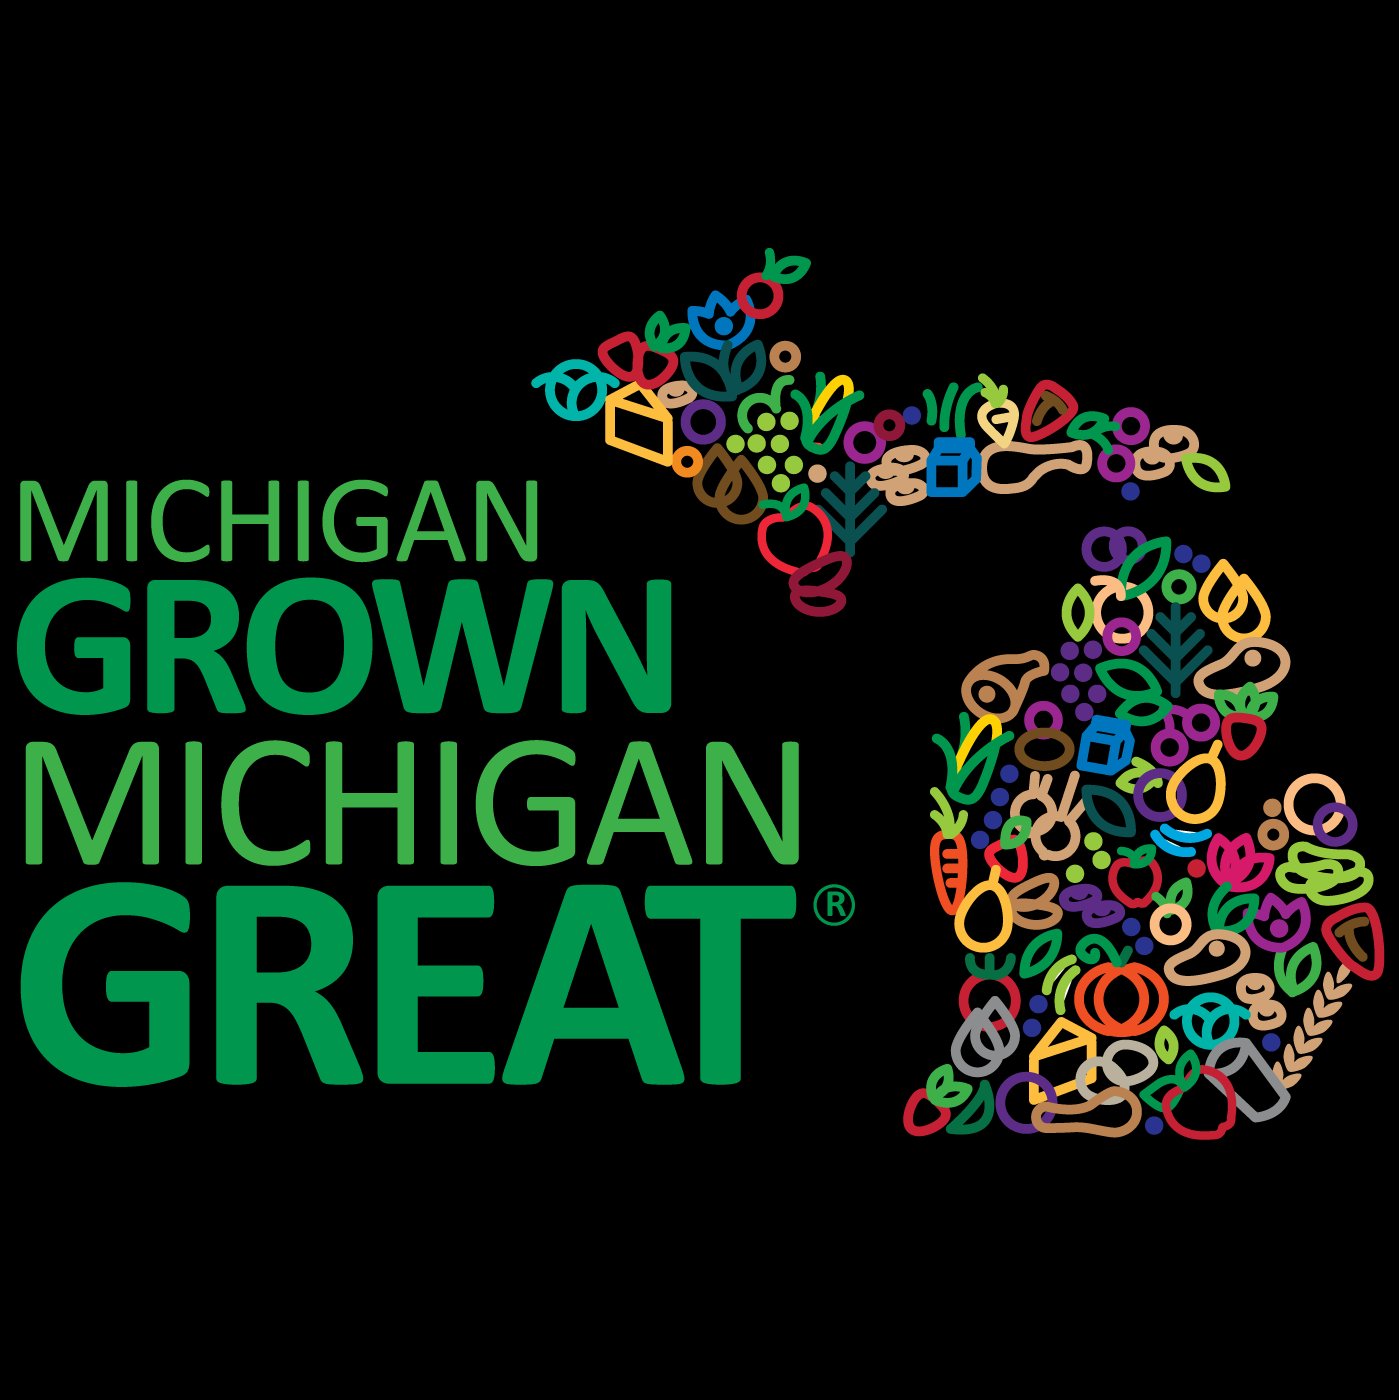 Michigan GROWN, Michigan GREAT podcast show art